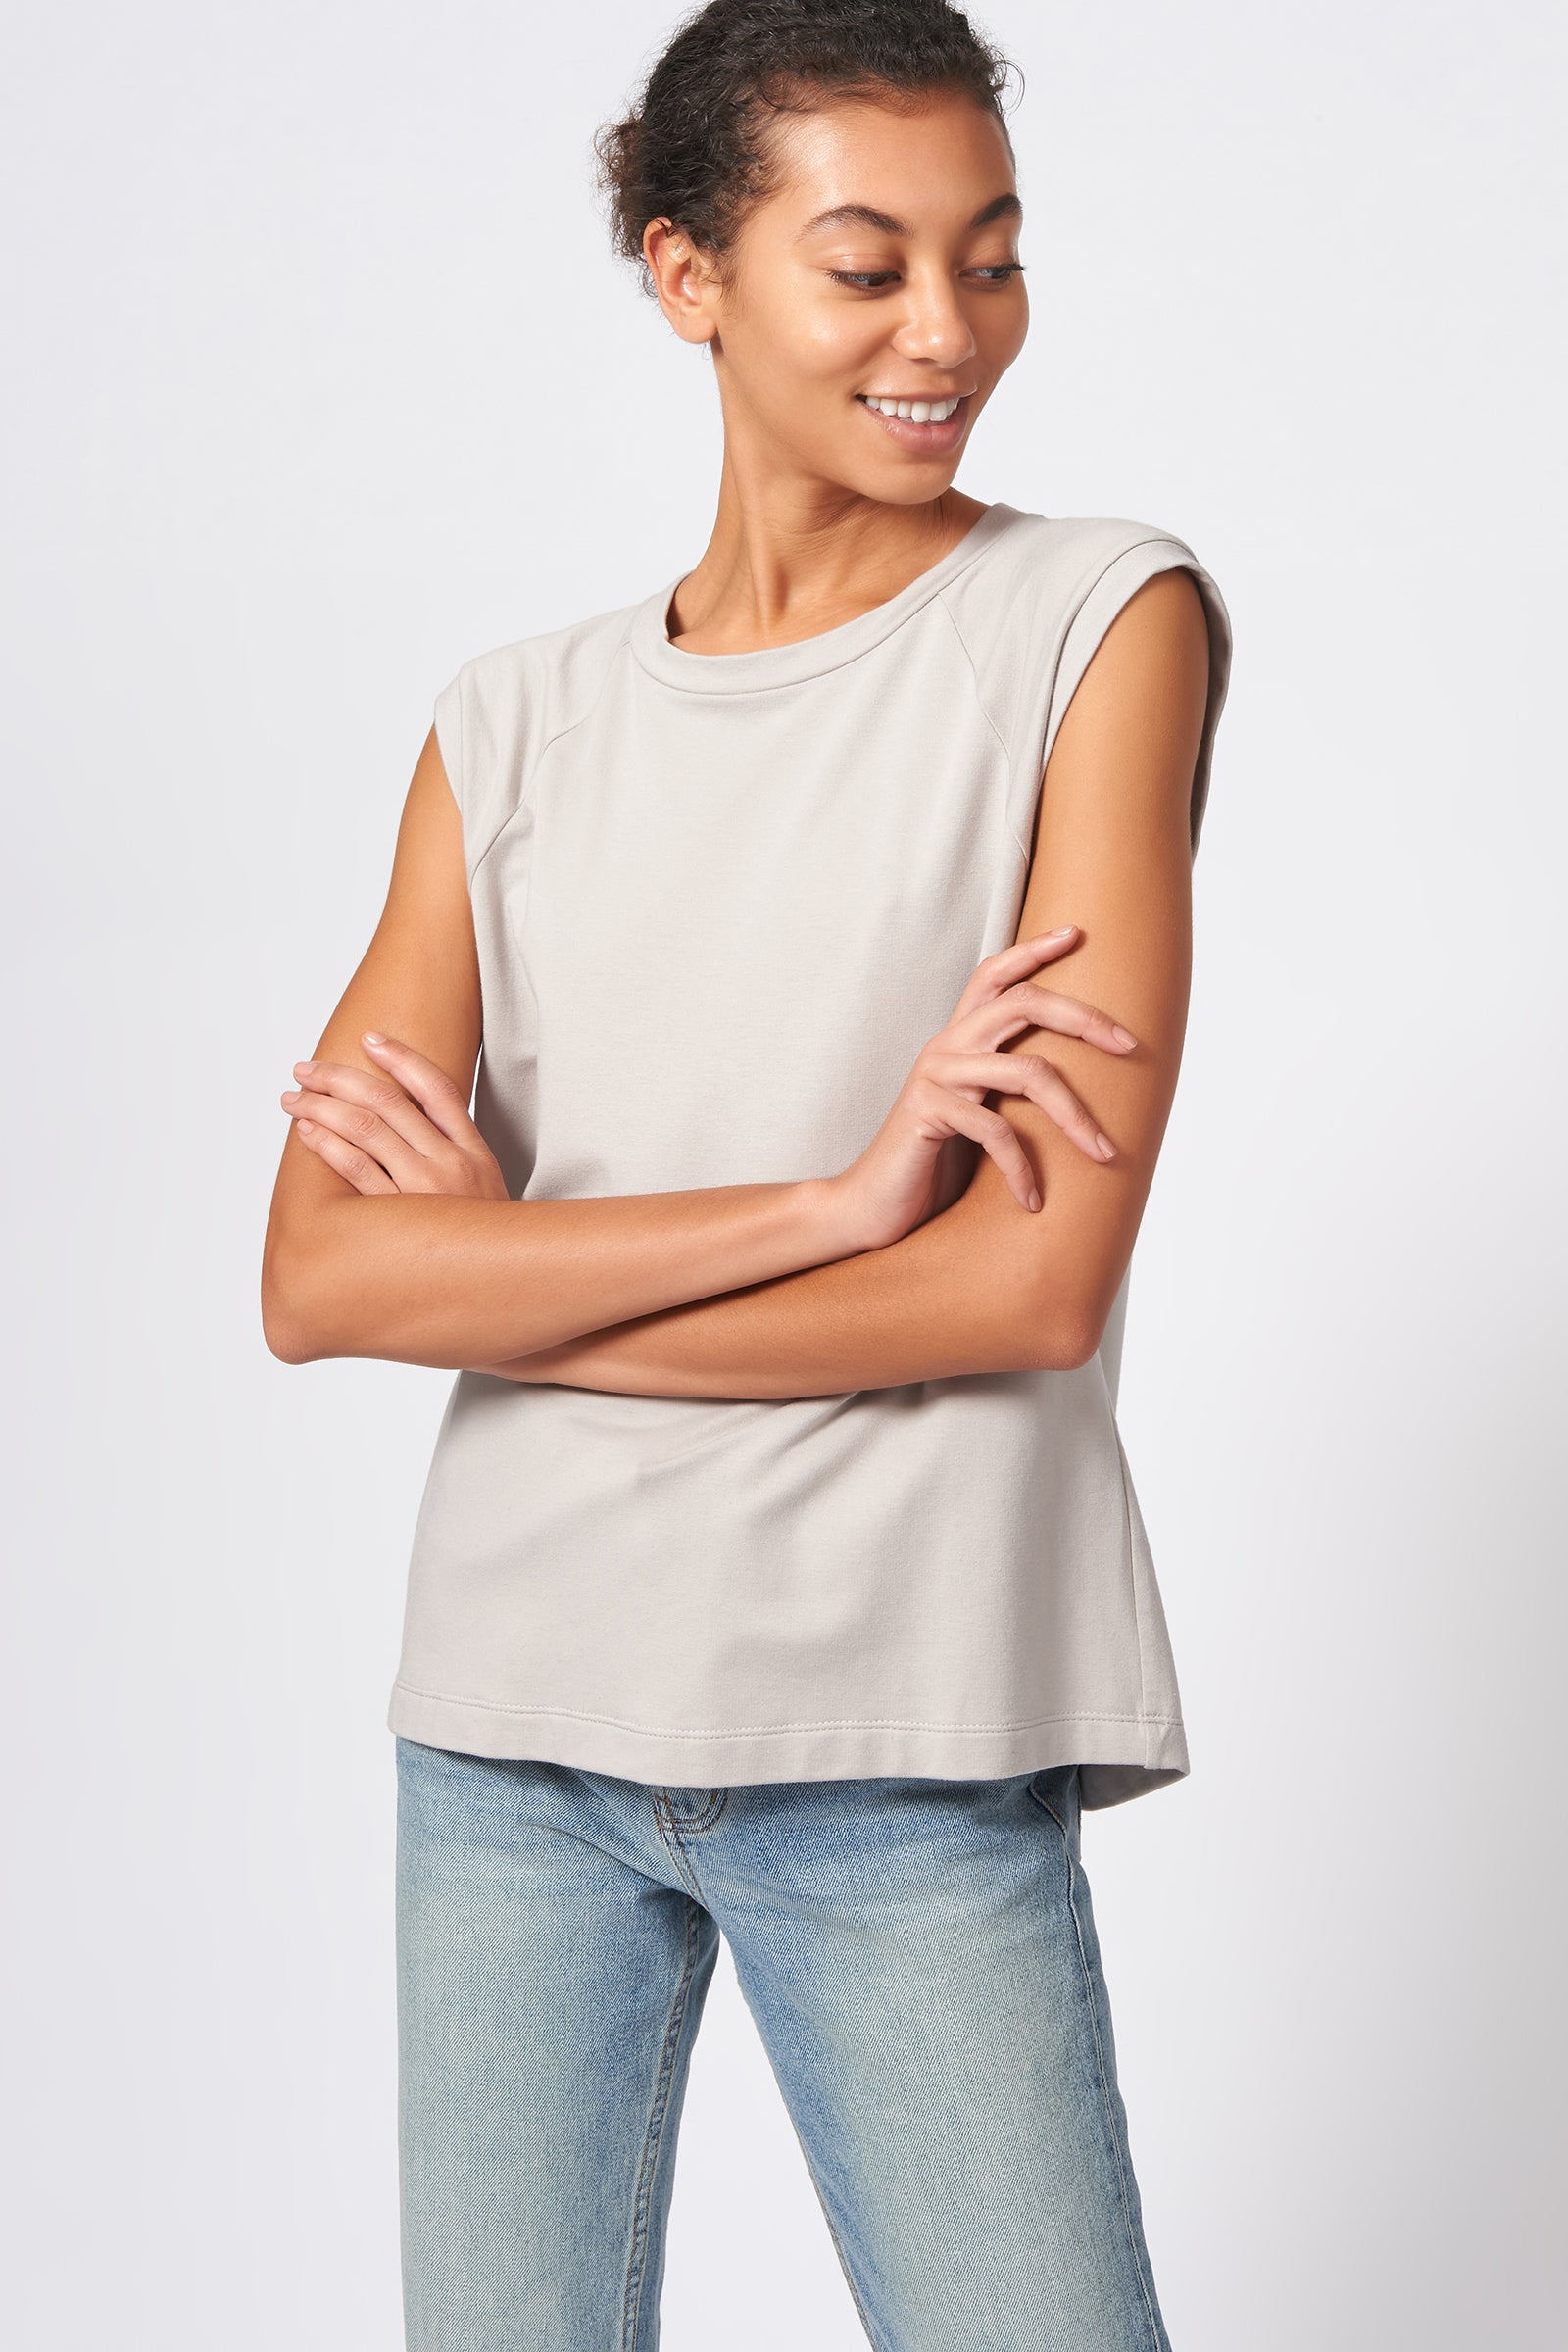 Kal Rieman Raglan Sweatshirt in Khaki on Model Front View